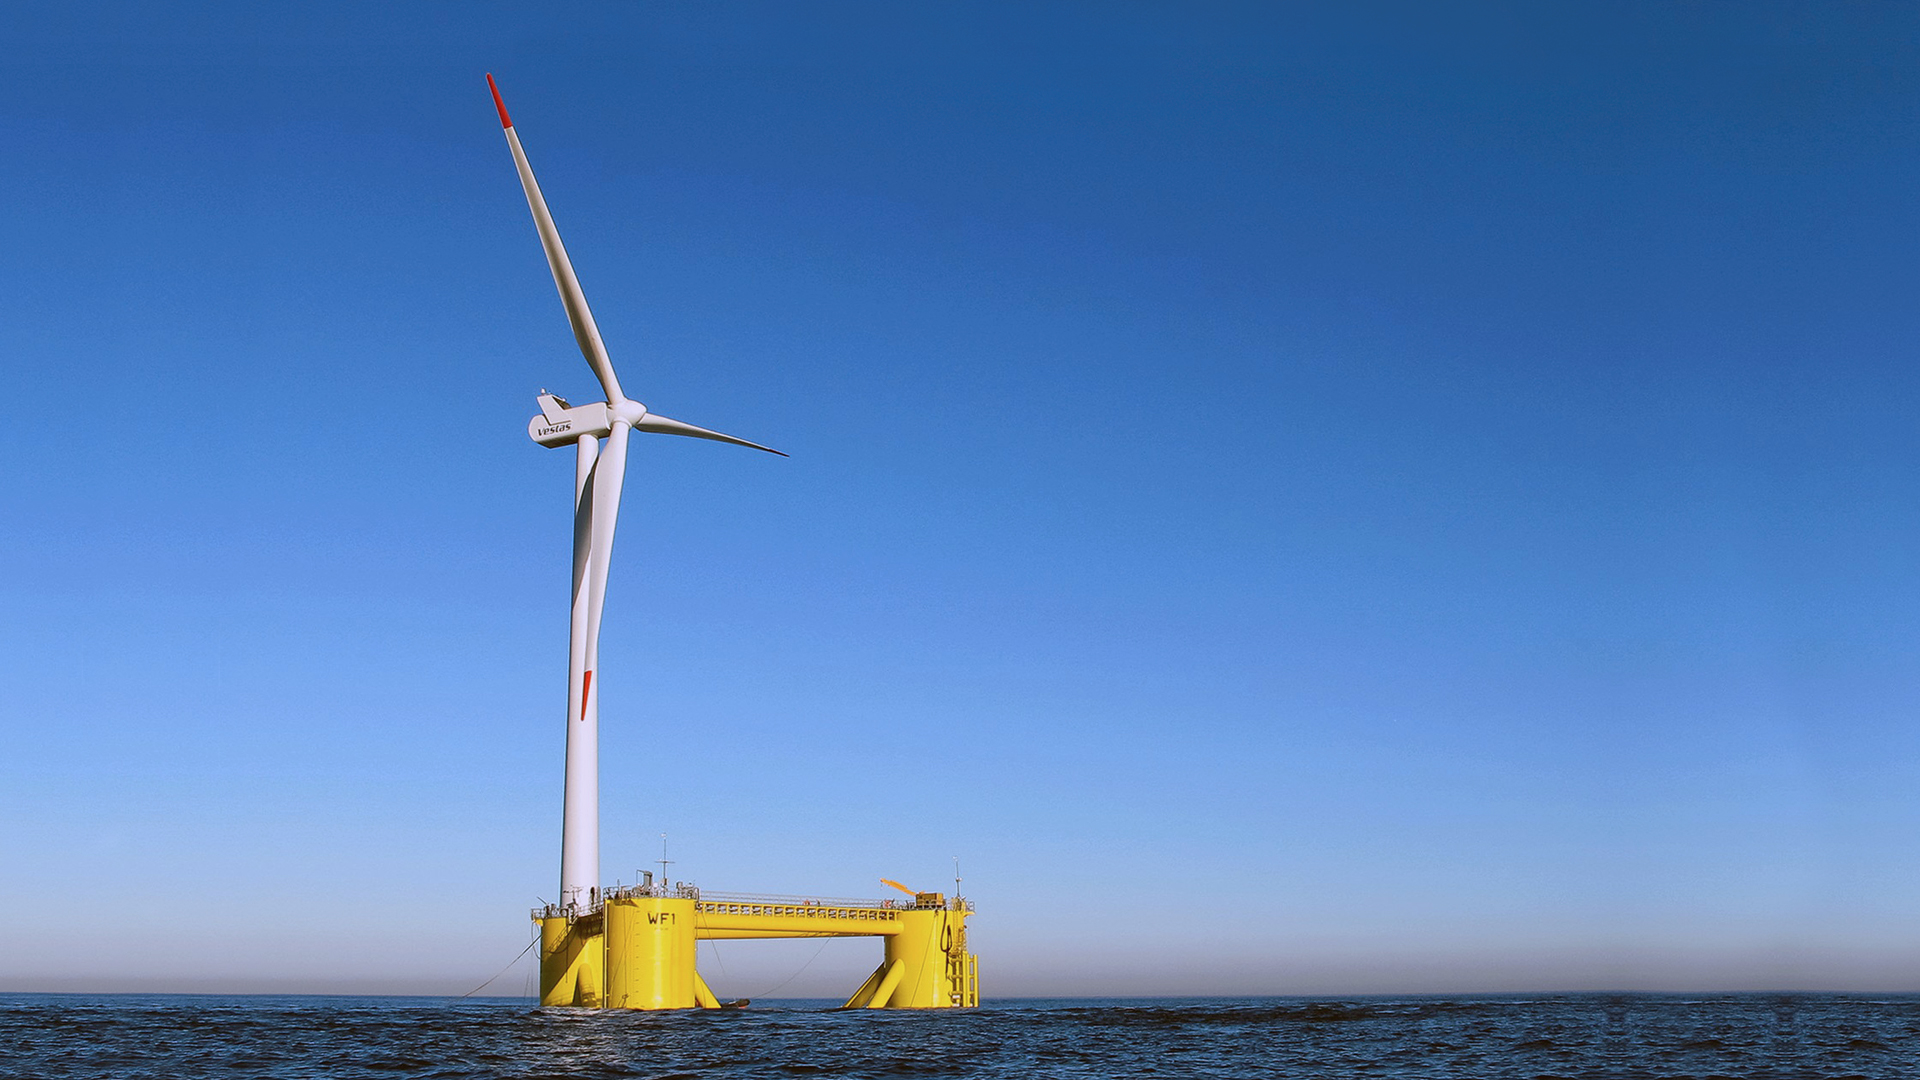 Aker OffshoreFloatingWind